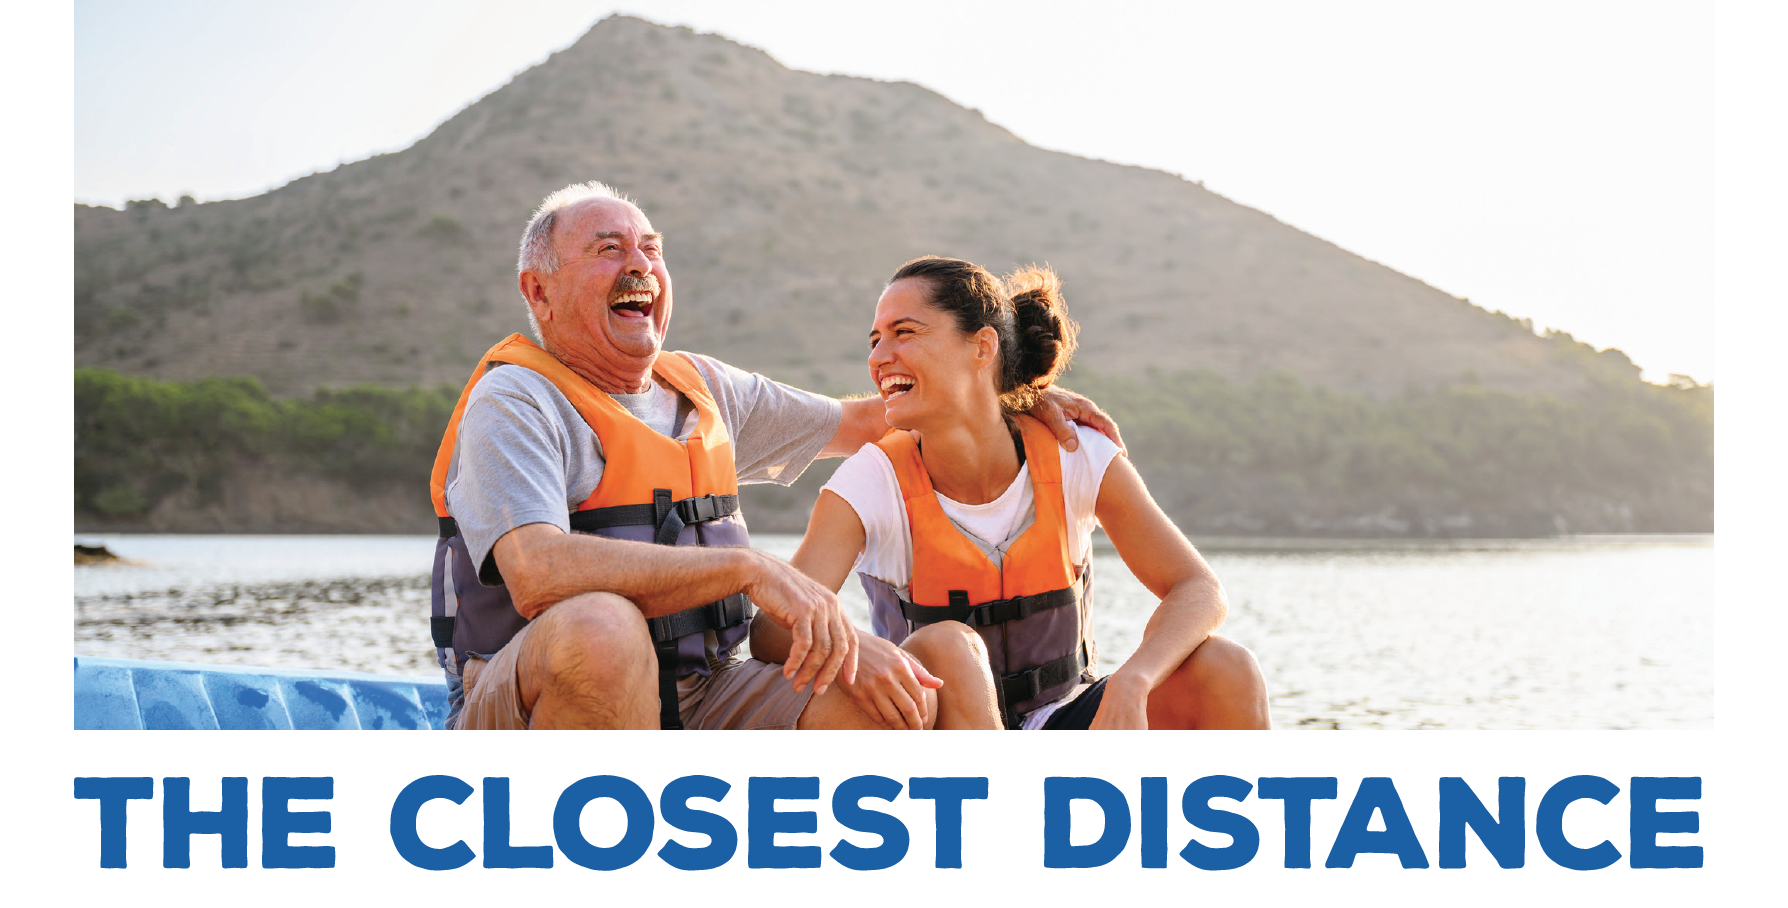 The Closest Distance